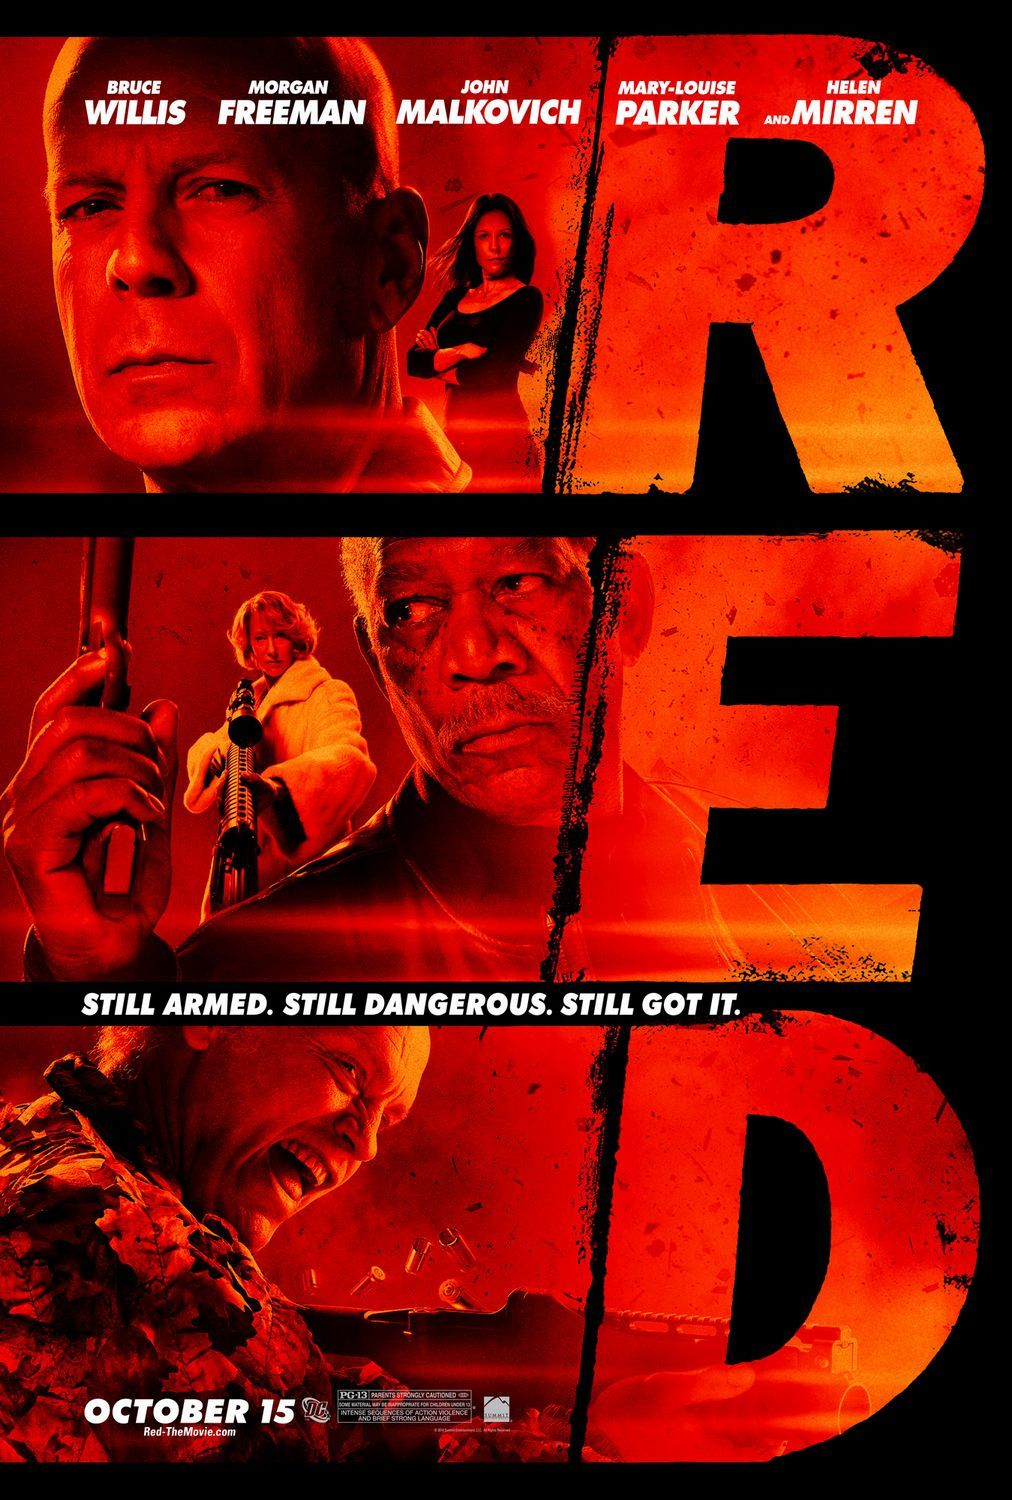 Title: R.E.D. (2010) Synopsis: When a Black Ops agent retires, a team of assassins try to take him out of the picture. While he's on the run, he tries to piece together who called the hit out on him before they shut him up permanently. Why you should like it: Because Bruce Willis, John Malkovich and Morgan Freeman are all in an action movie together. Why else? Availability: DVD, Blu-Ray, Digital Download.